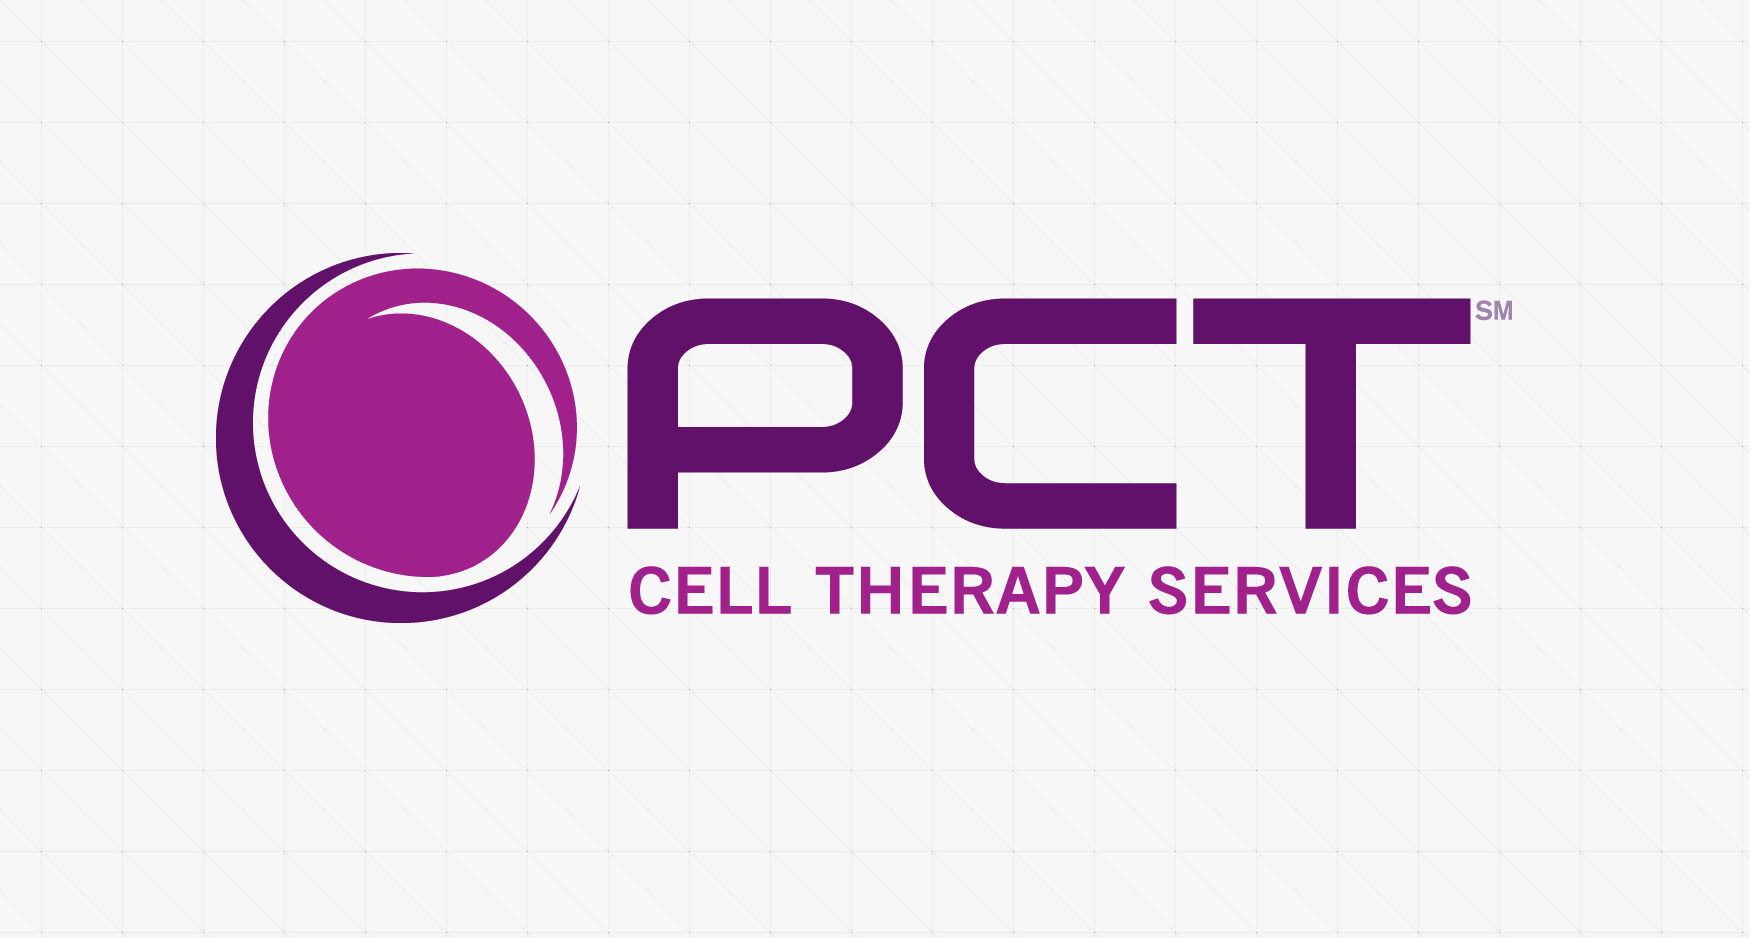 BP Large Website Images - PCT CELL THERAPY - REPOSITIONING & REBRANDING